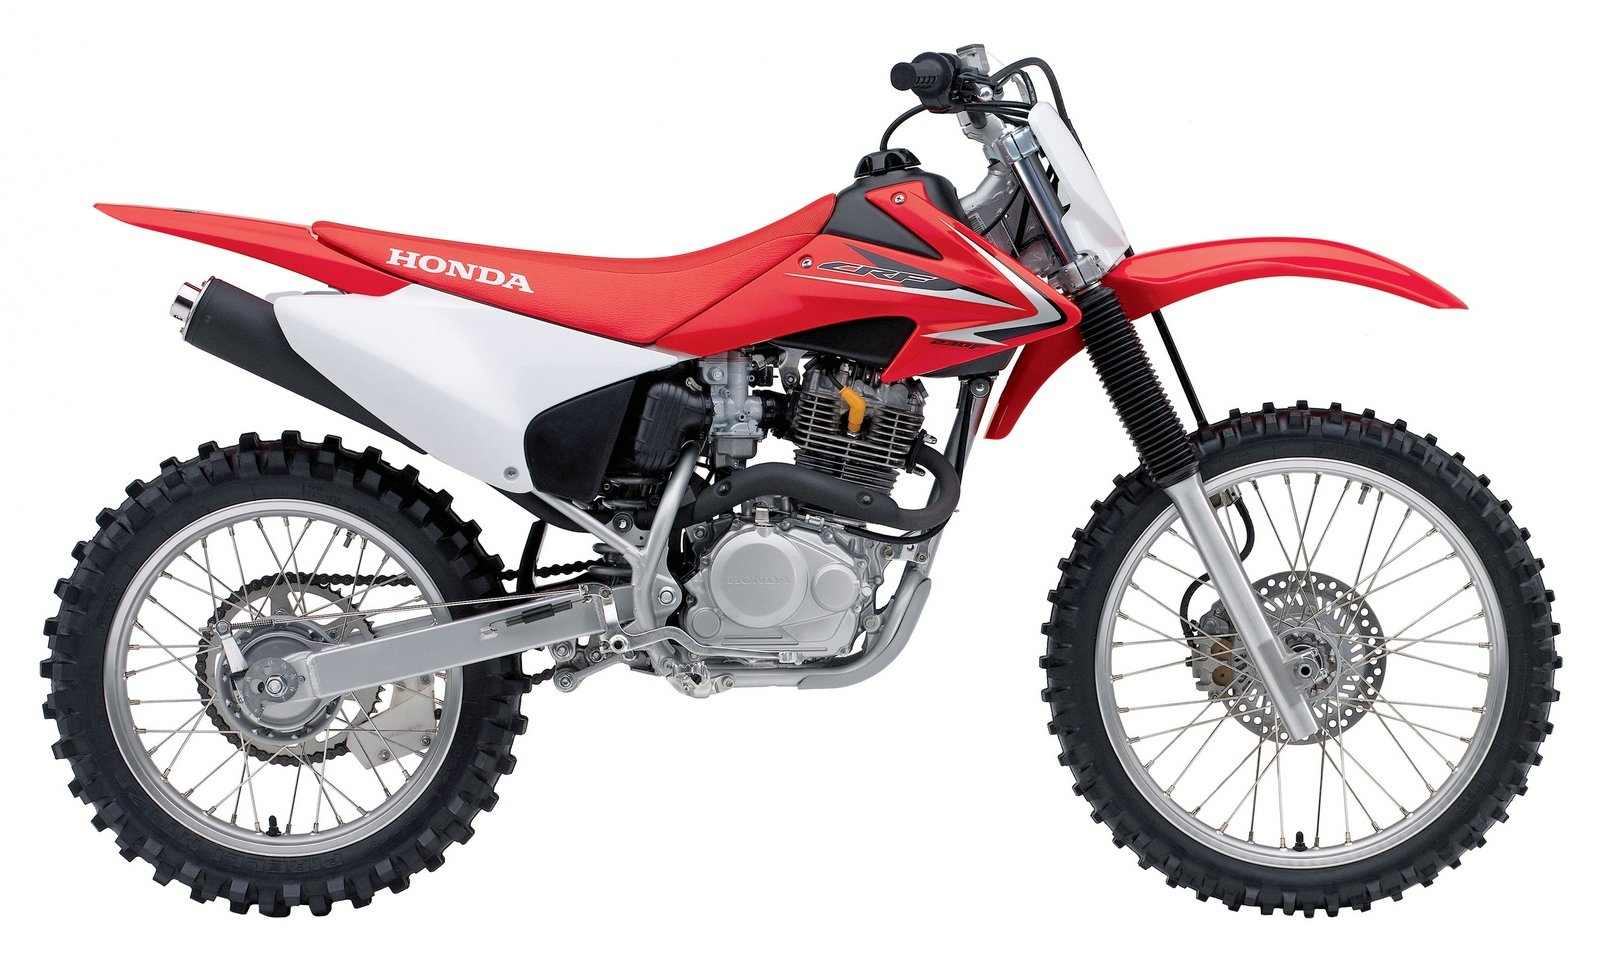 2009 Honda Crf230f Review Top Speed